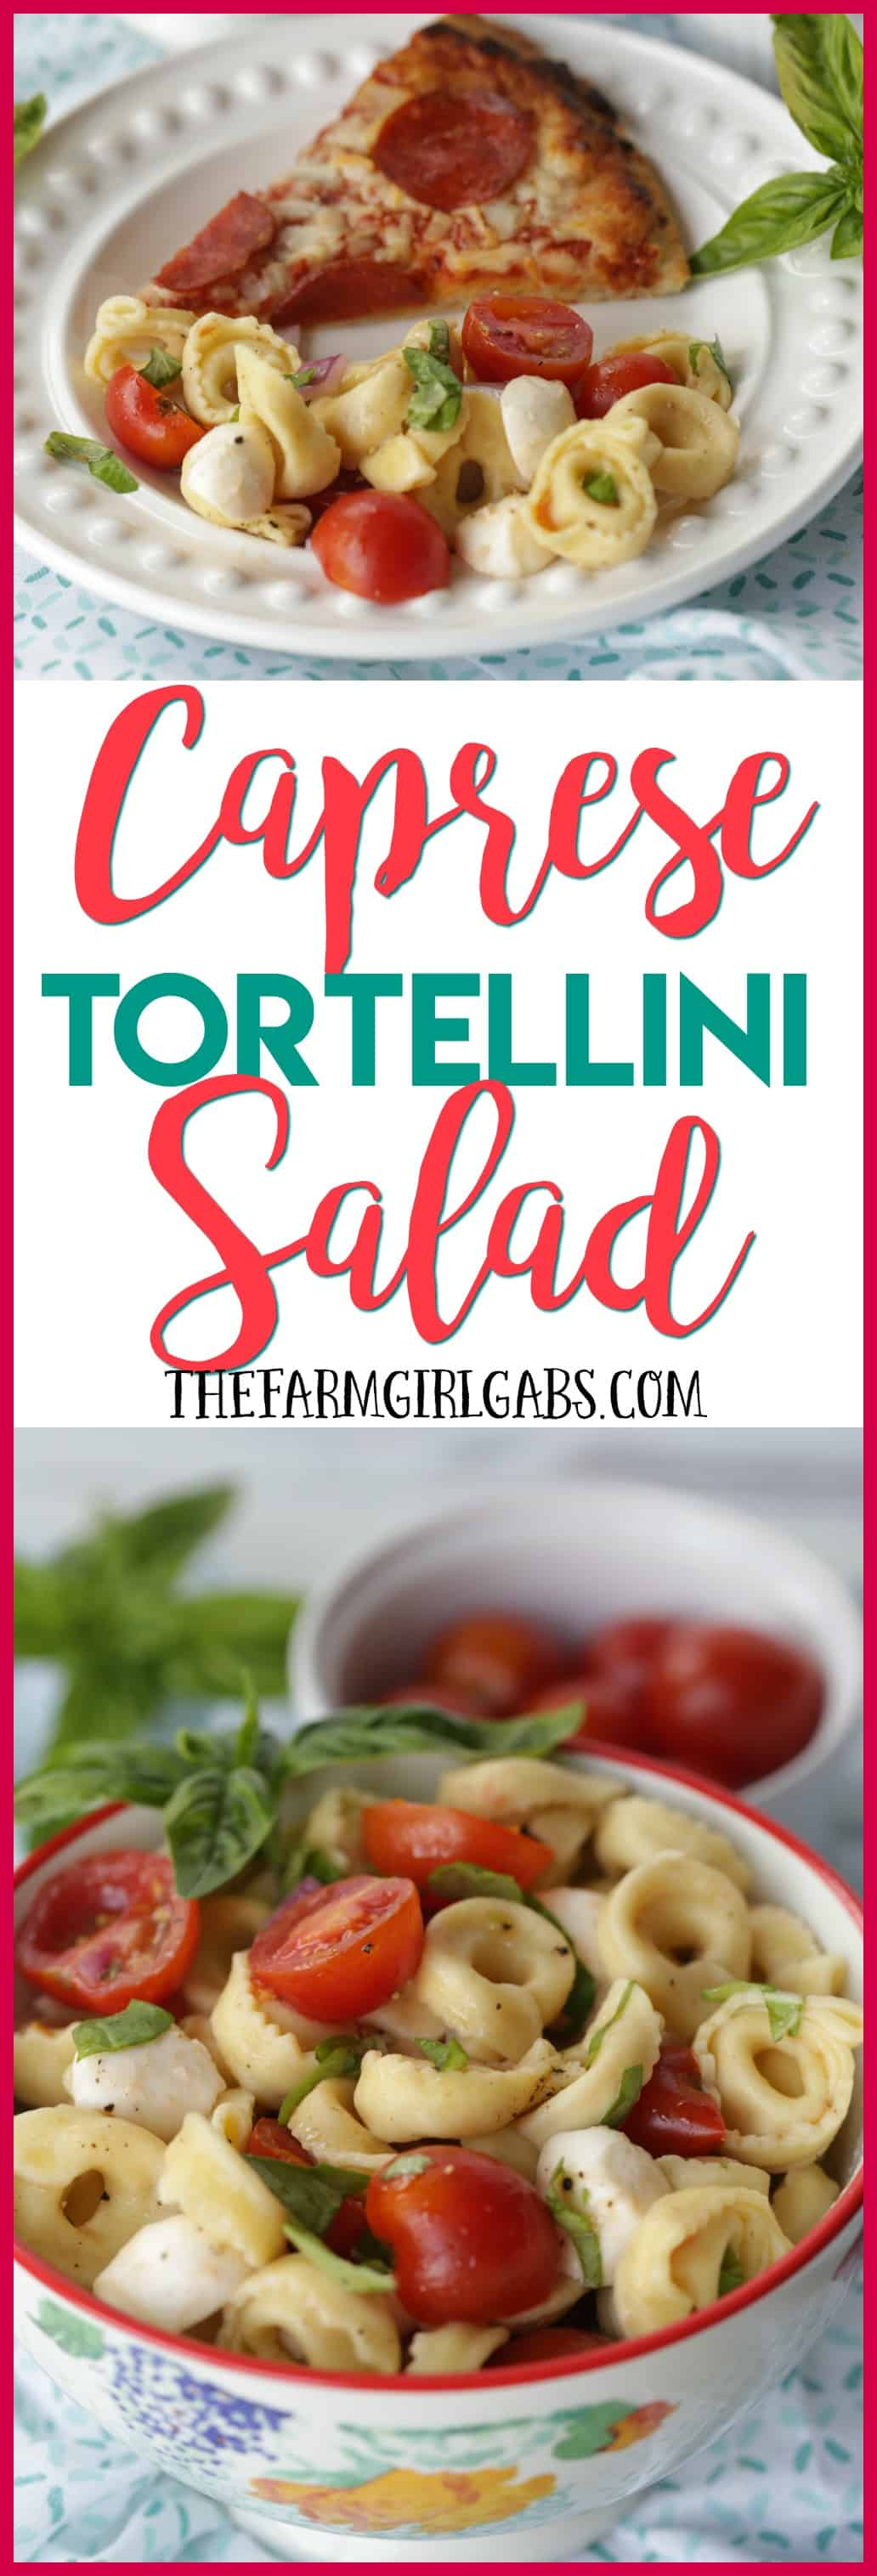 Turn pizza night into party night with this delicious Caprese Tortellini Salad. This recipe is the perfect quick side dish for a weeknight dinner or party. #Ad #WinWithTonysPizza